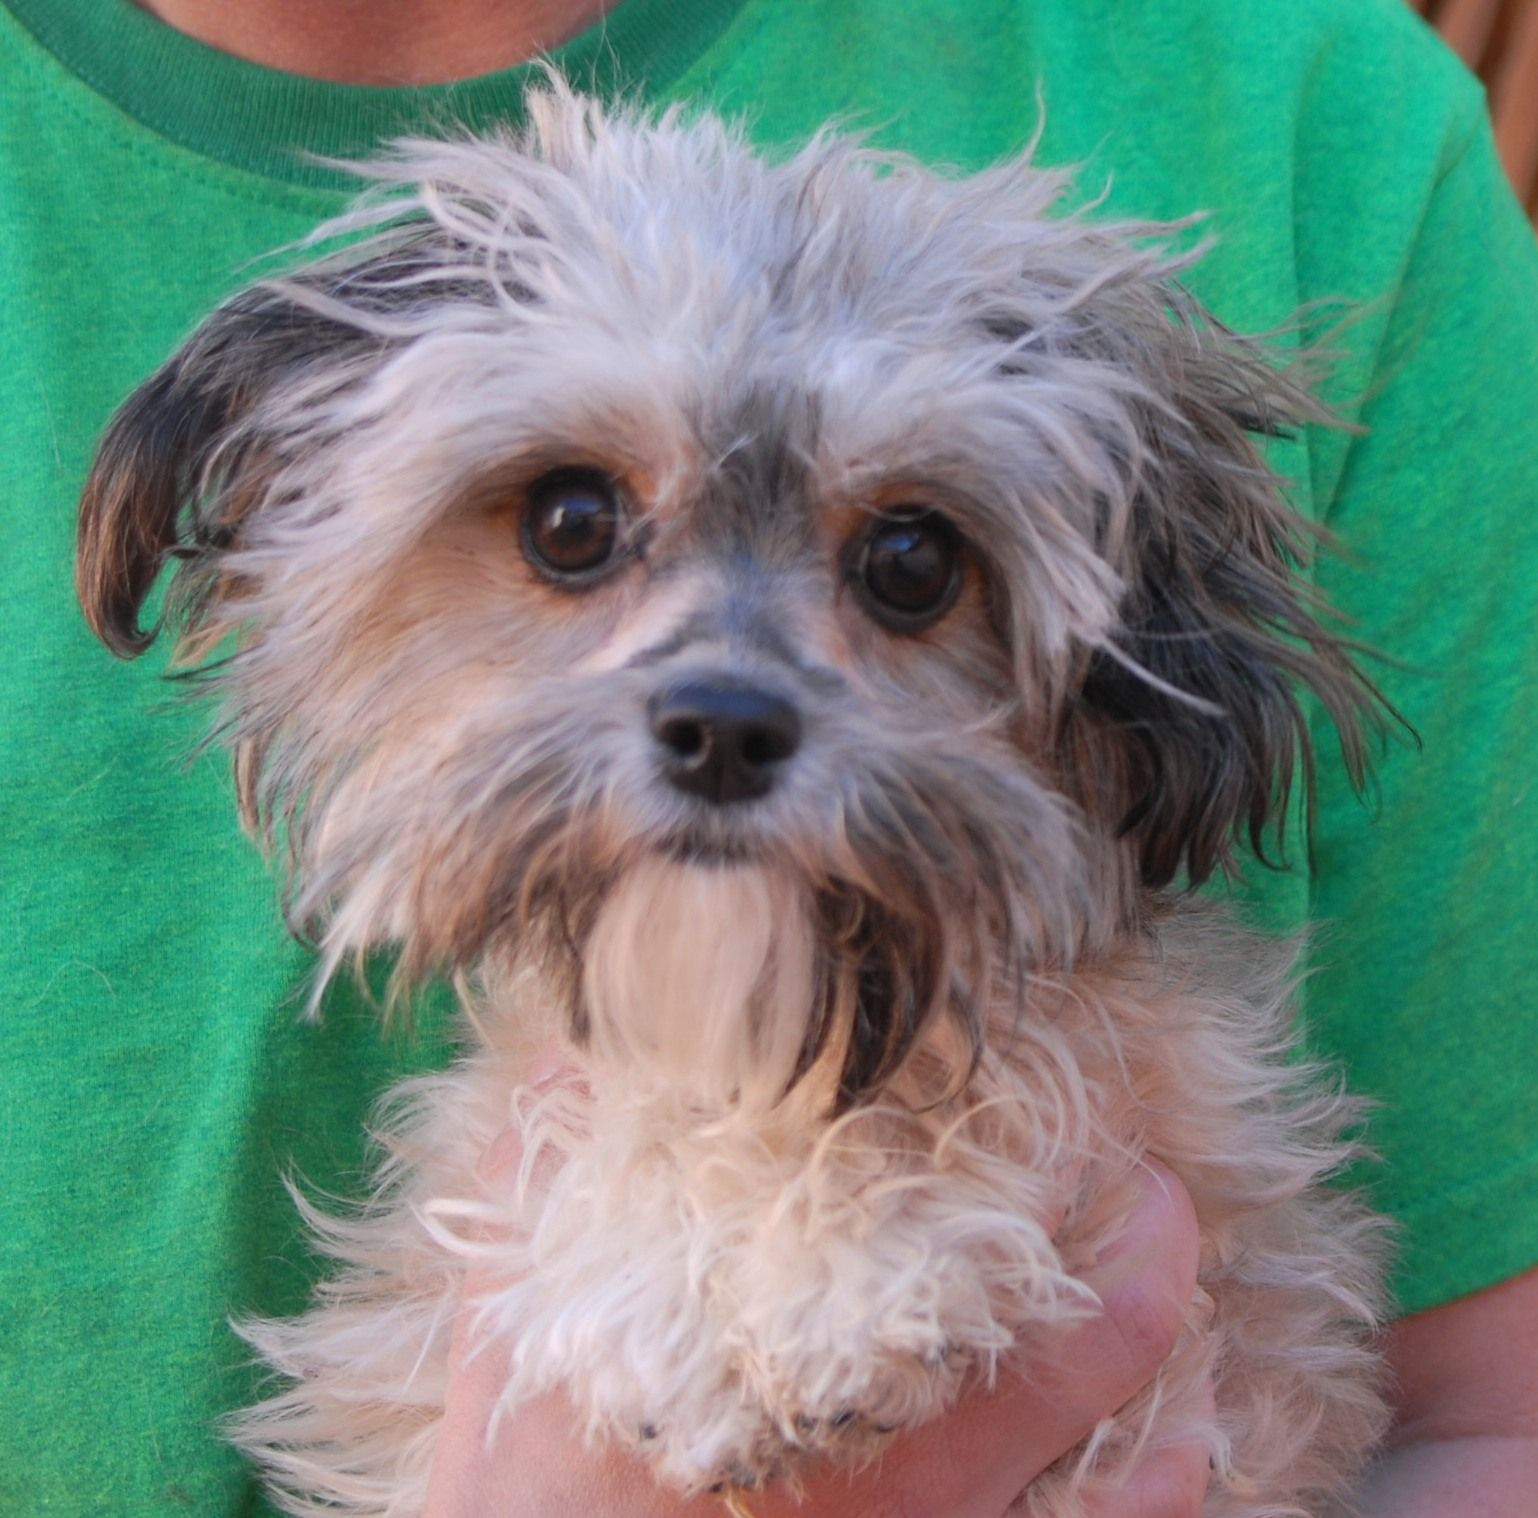 Bryson Is An Angelic Baby Boy Melting The Hearts Of Volunteers And Staff He Is A Shih Tzu Yorkshire Terrier Mix Junio Dog Adoption Dog Friends Cat Adoption